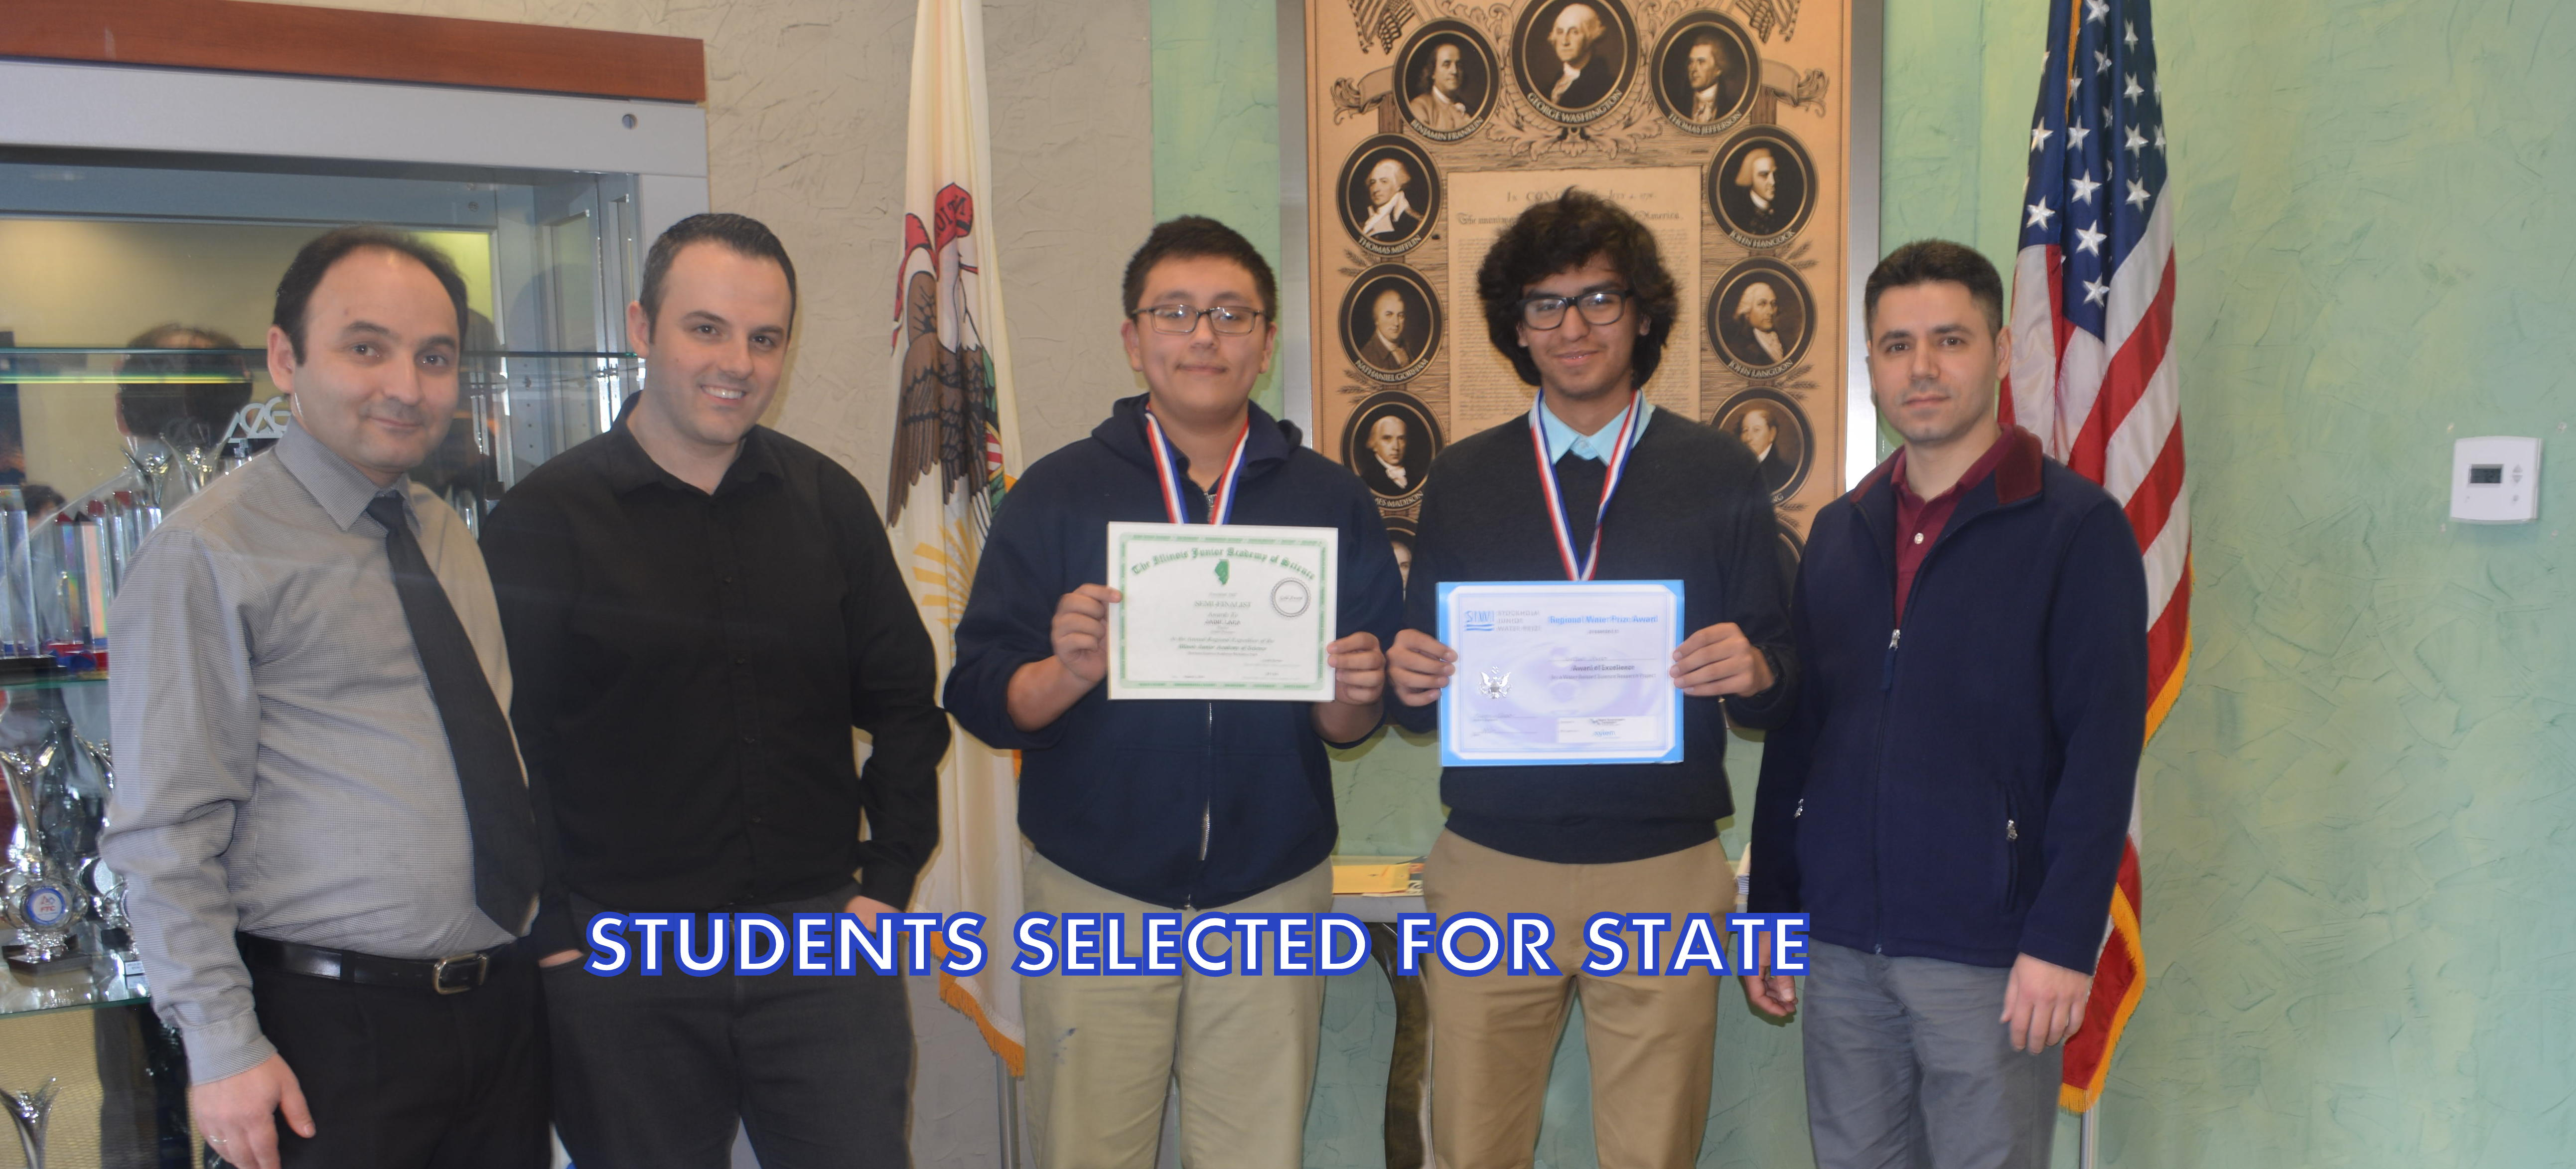 Our Students Selected For State2016